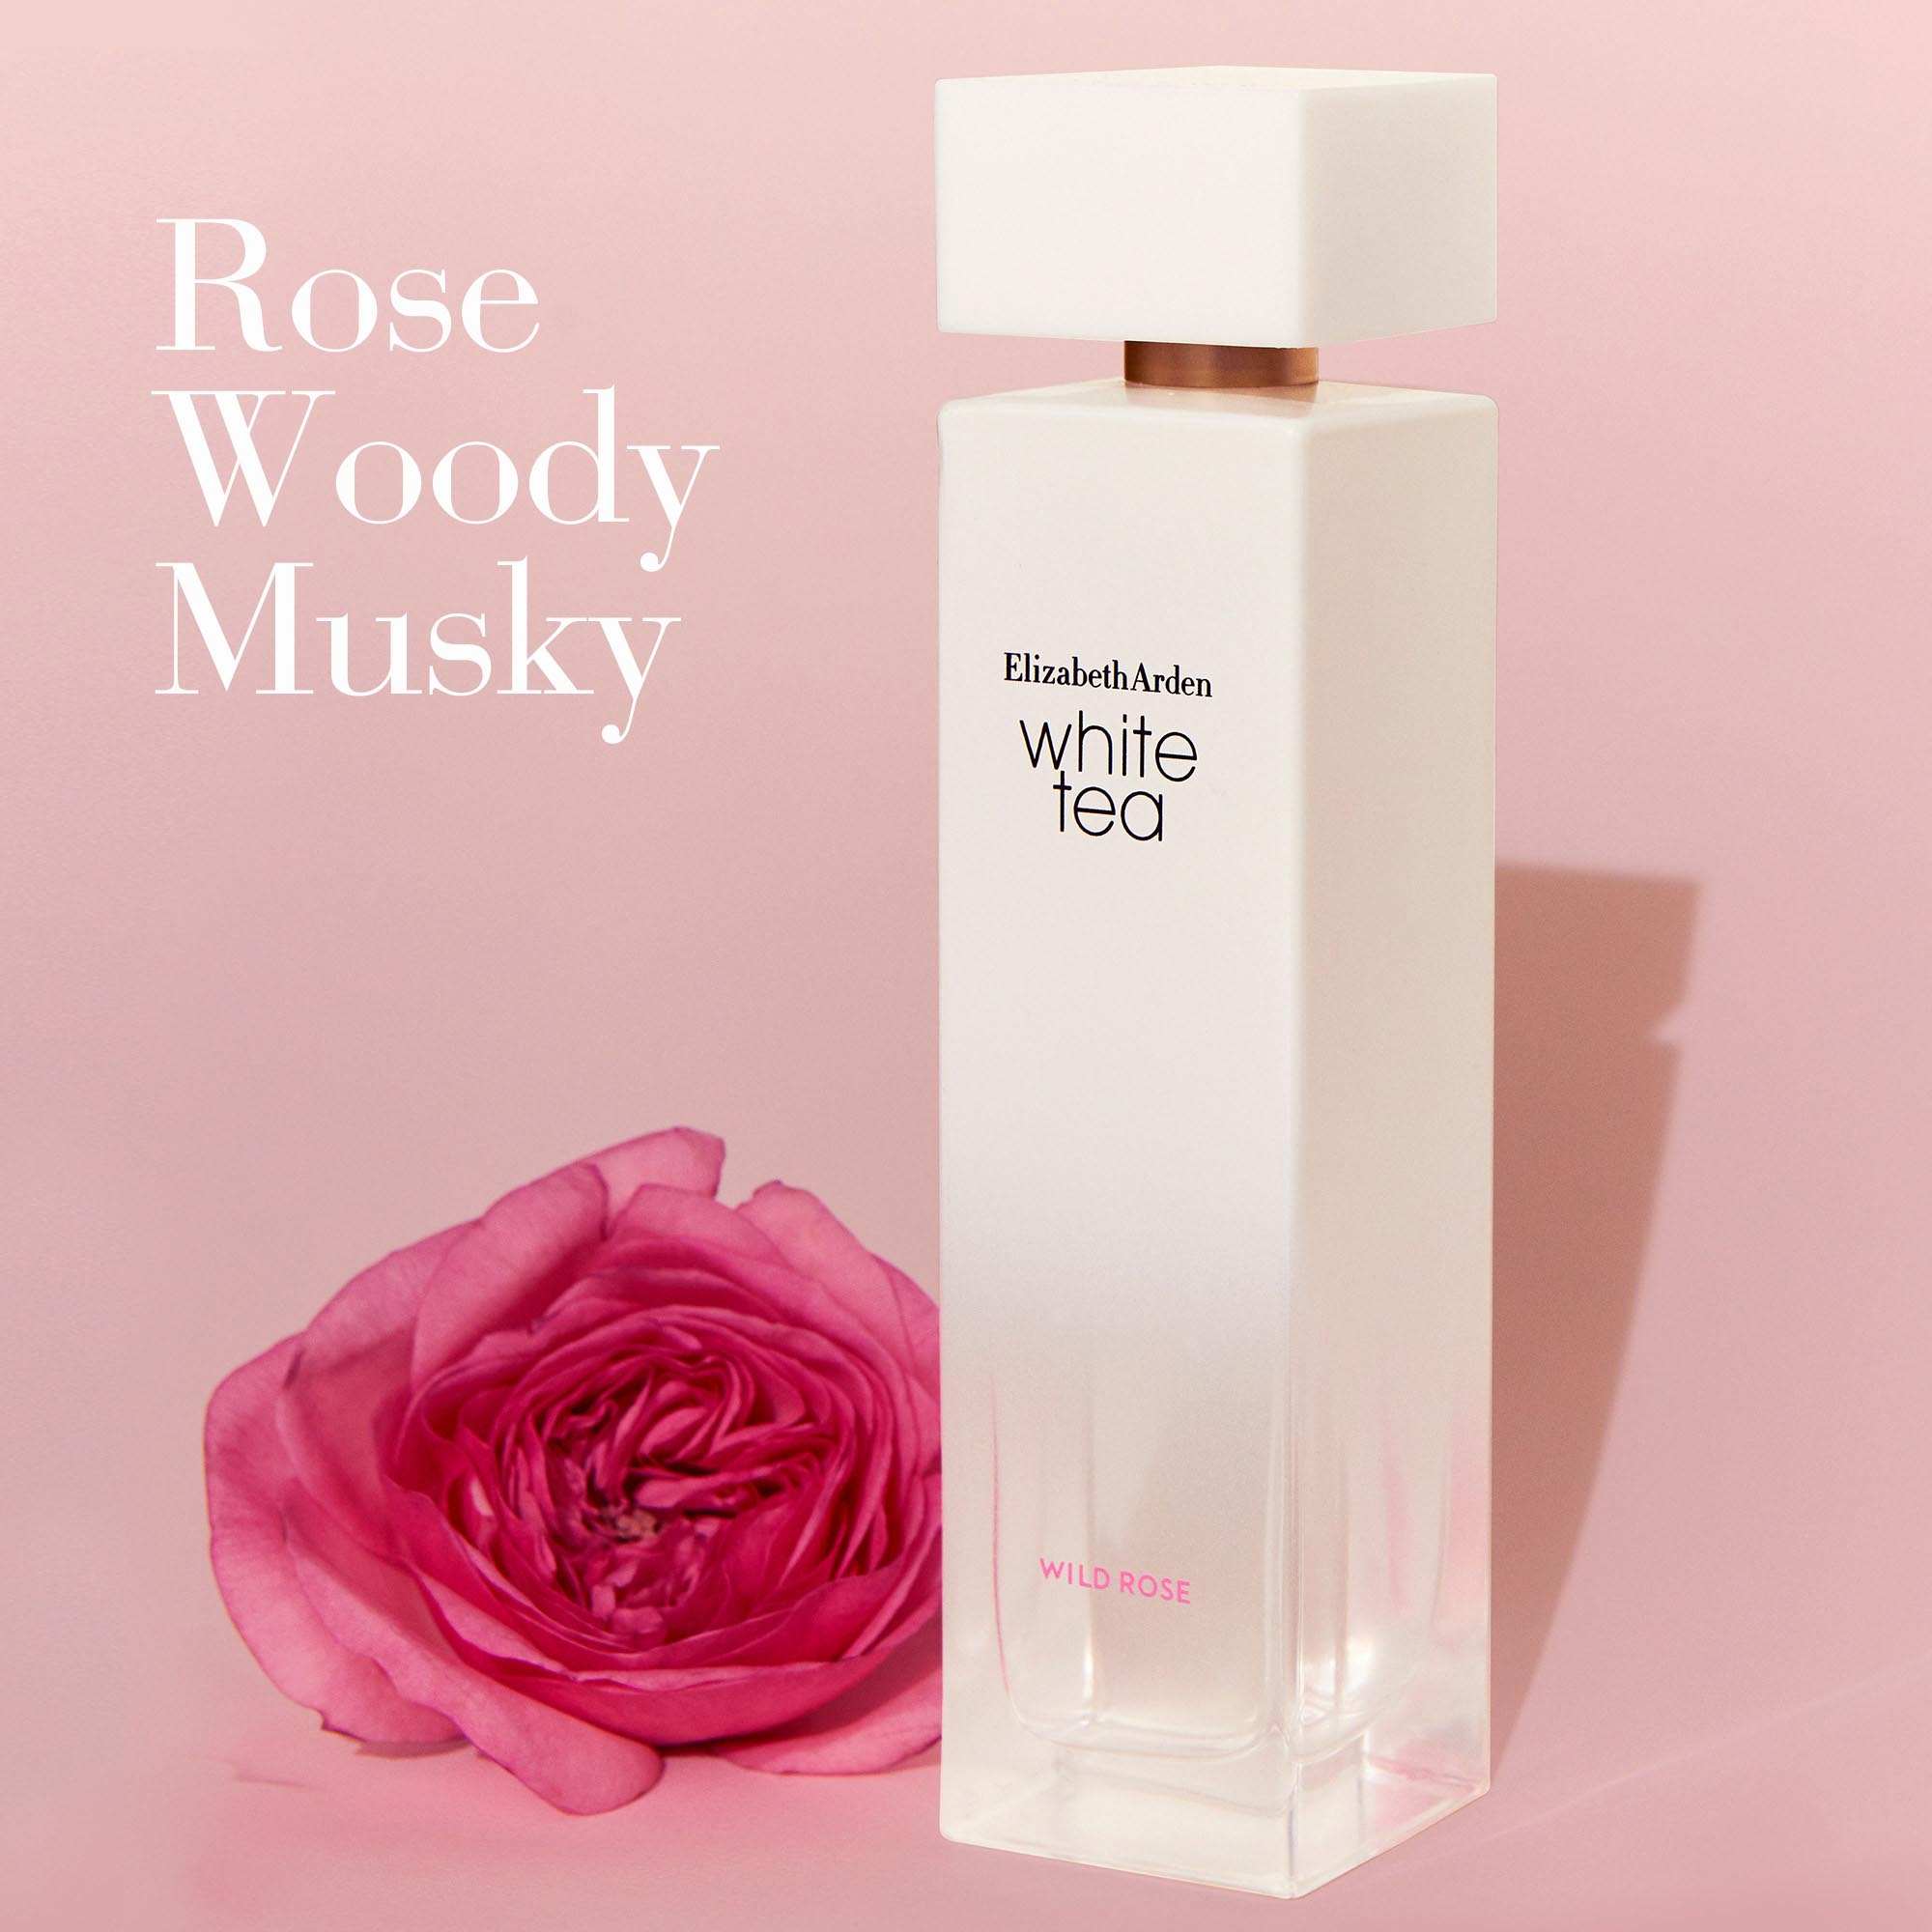 White Tea Wild Rose Scent- Rose, Woody, Musky